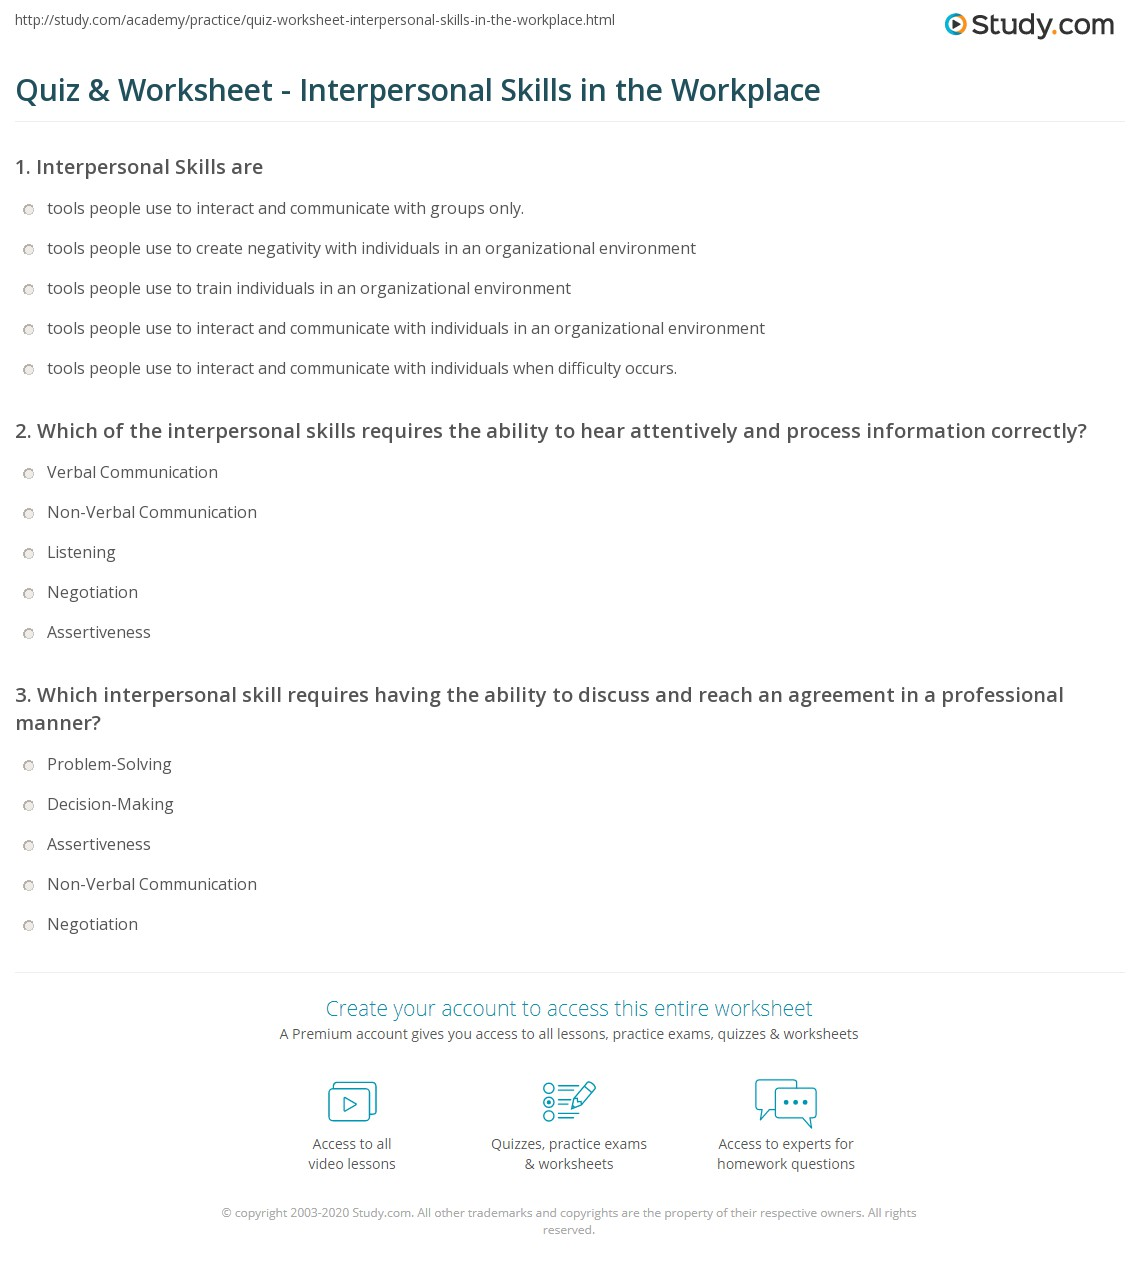 Quiz Worksheet Interpersonal Skills In The Workplace Study Com